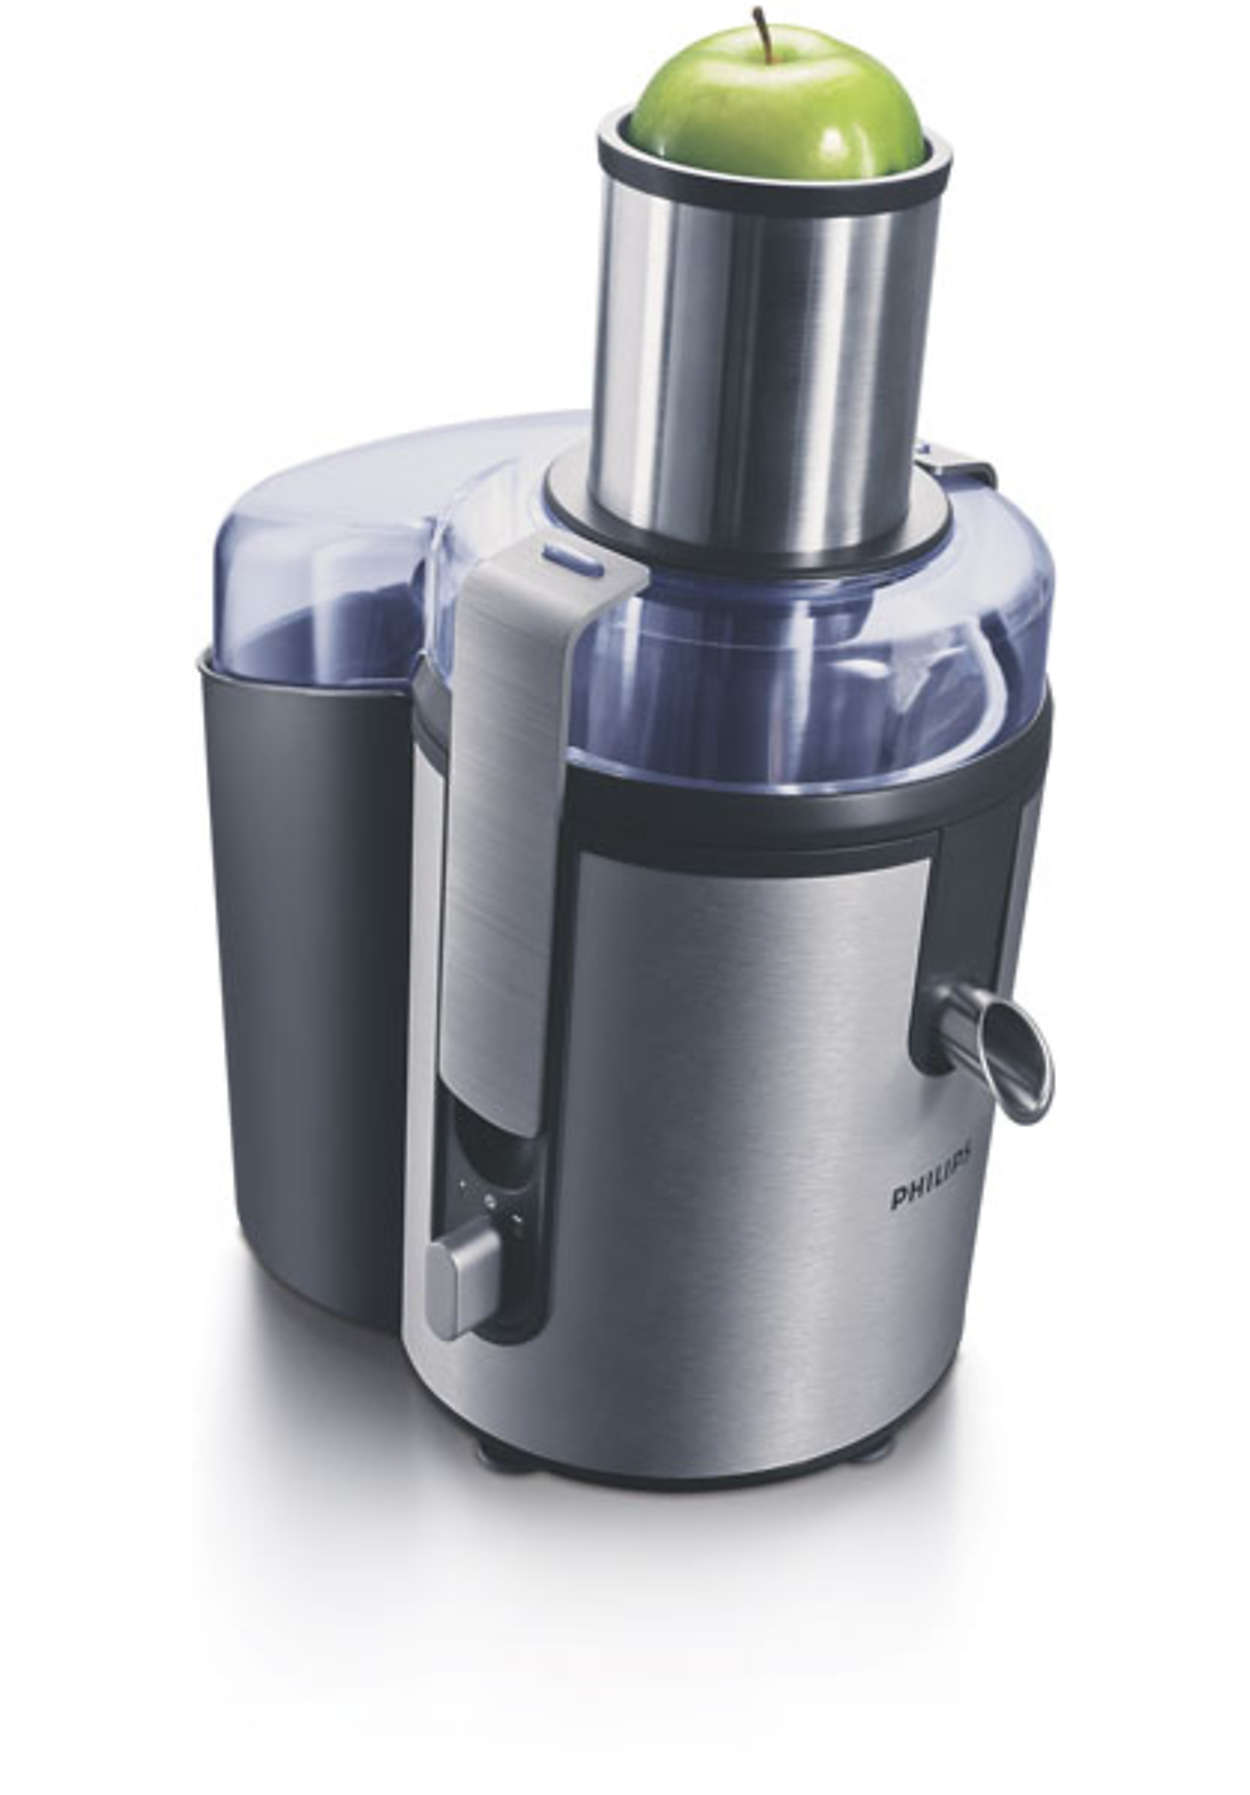 Aluminium Collection Juicer HR1865/00 Philips